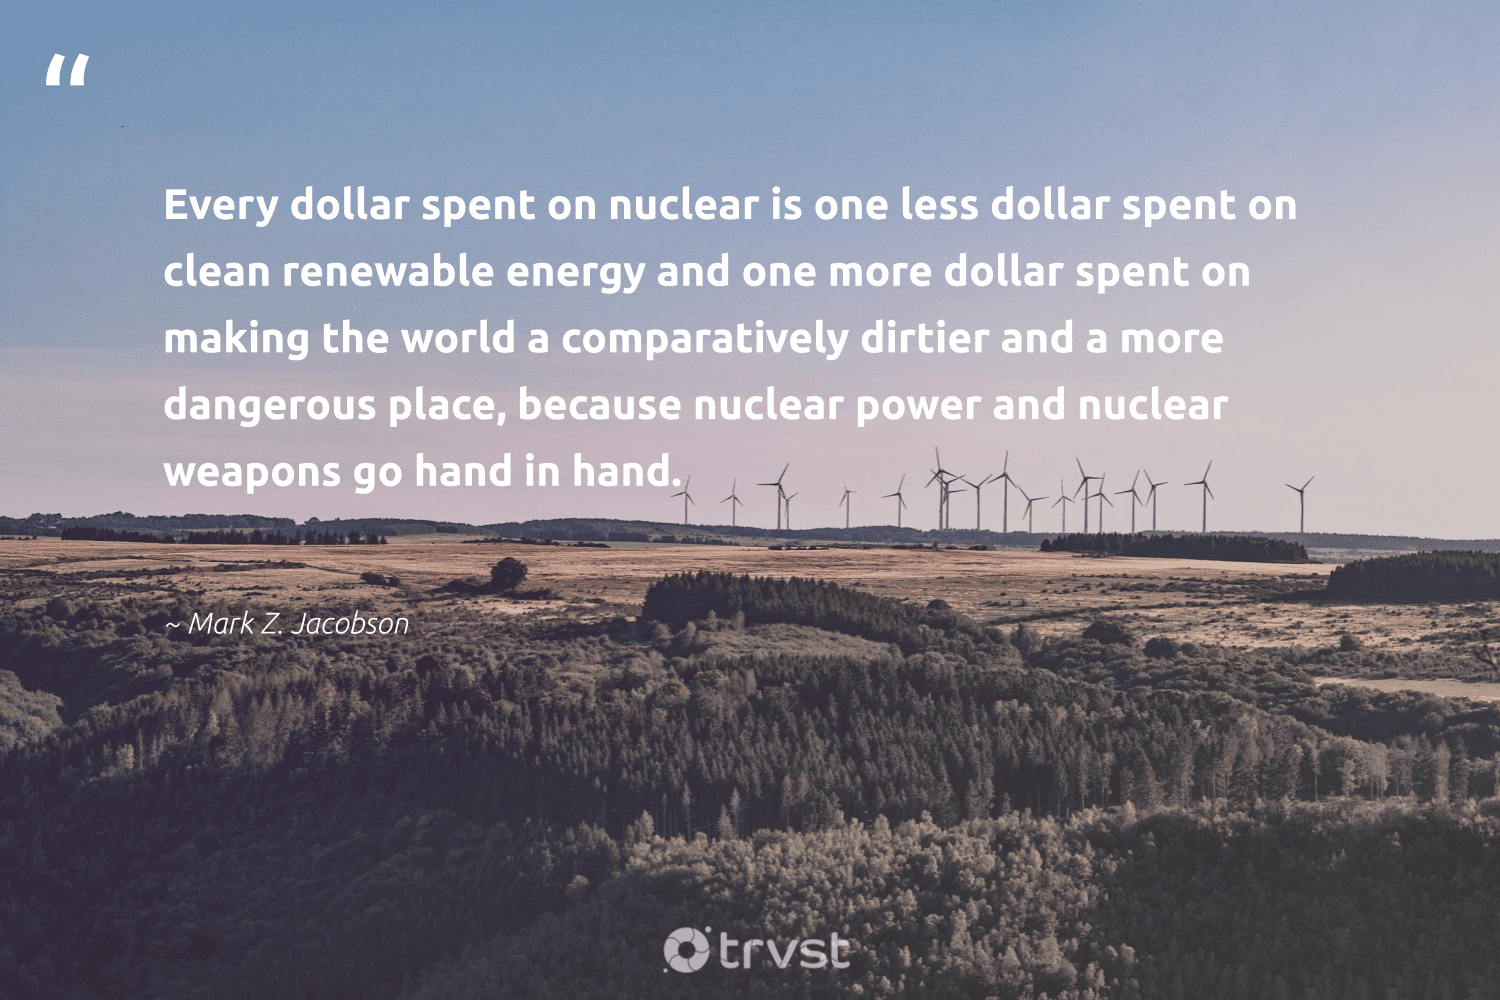 """""""Every dollar spent on nuclear is one less dollar spent on clean renewable energy and one more dollar spent on making the world a comparatively dirtier and a more dangerous place, because nuclear power and nuclear weapons go hand in hand.""""  - Mark Z. Jacobson #trvst #quotes #renewableenergy #energy #renewable #lowcarbon #greenenergy #globalwarming #environment #changetheworld #100percentrenewable #renewables"""